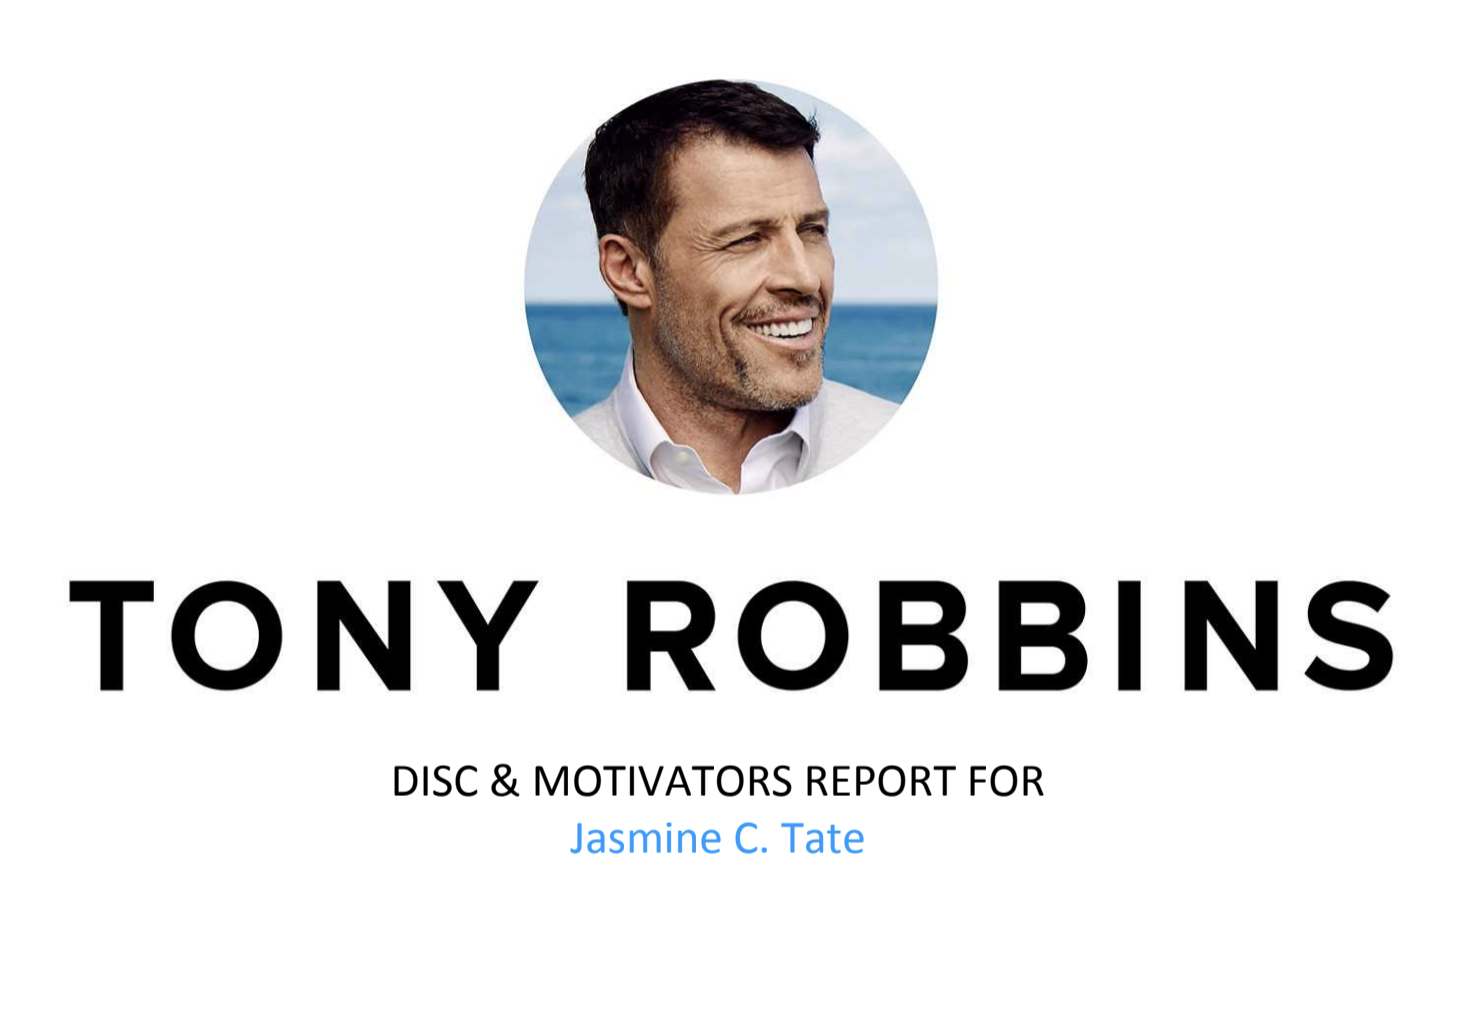 Tony Robbins. DISC Report. JasmineCTate.com. Jasmine C. Tate .png